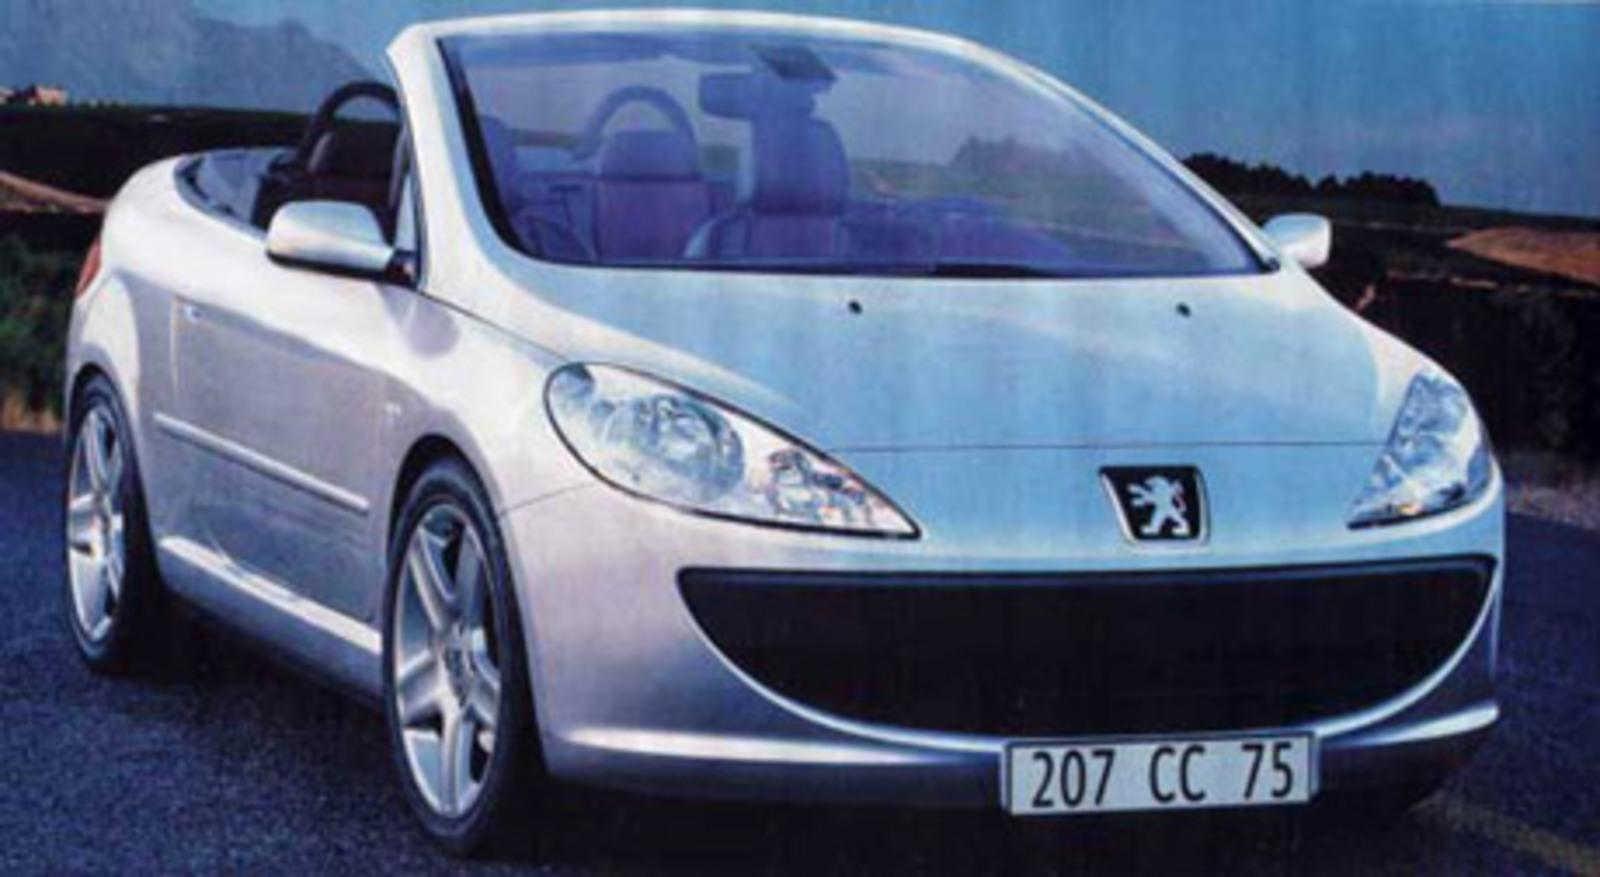 2007 peugeot 207 cc review top speed. Black Bedroom Furniture Sets. Home Design Ideas